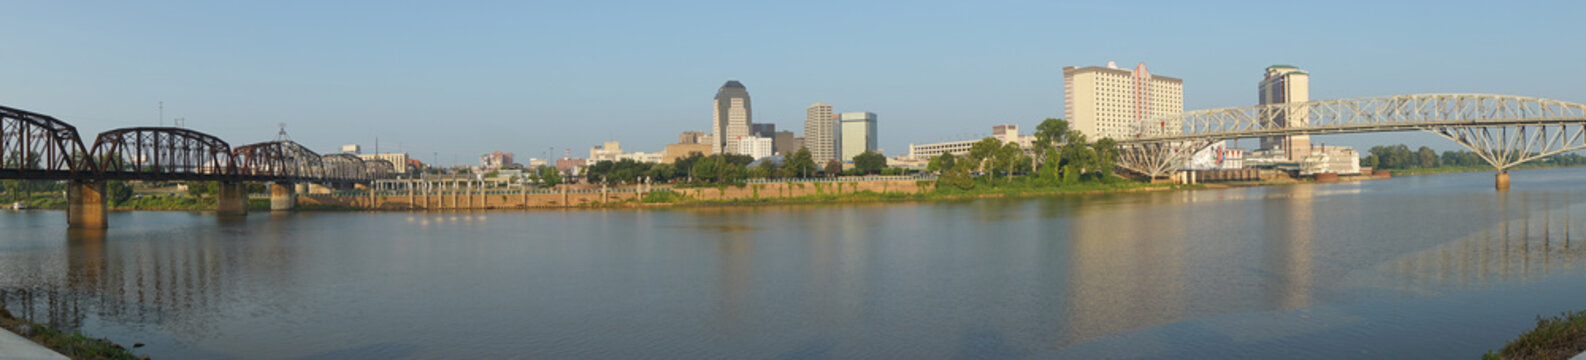 Shreveport is a city on the Red River in the U.S. state of Louisiana.